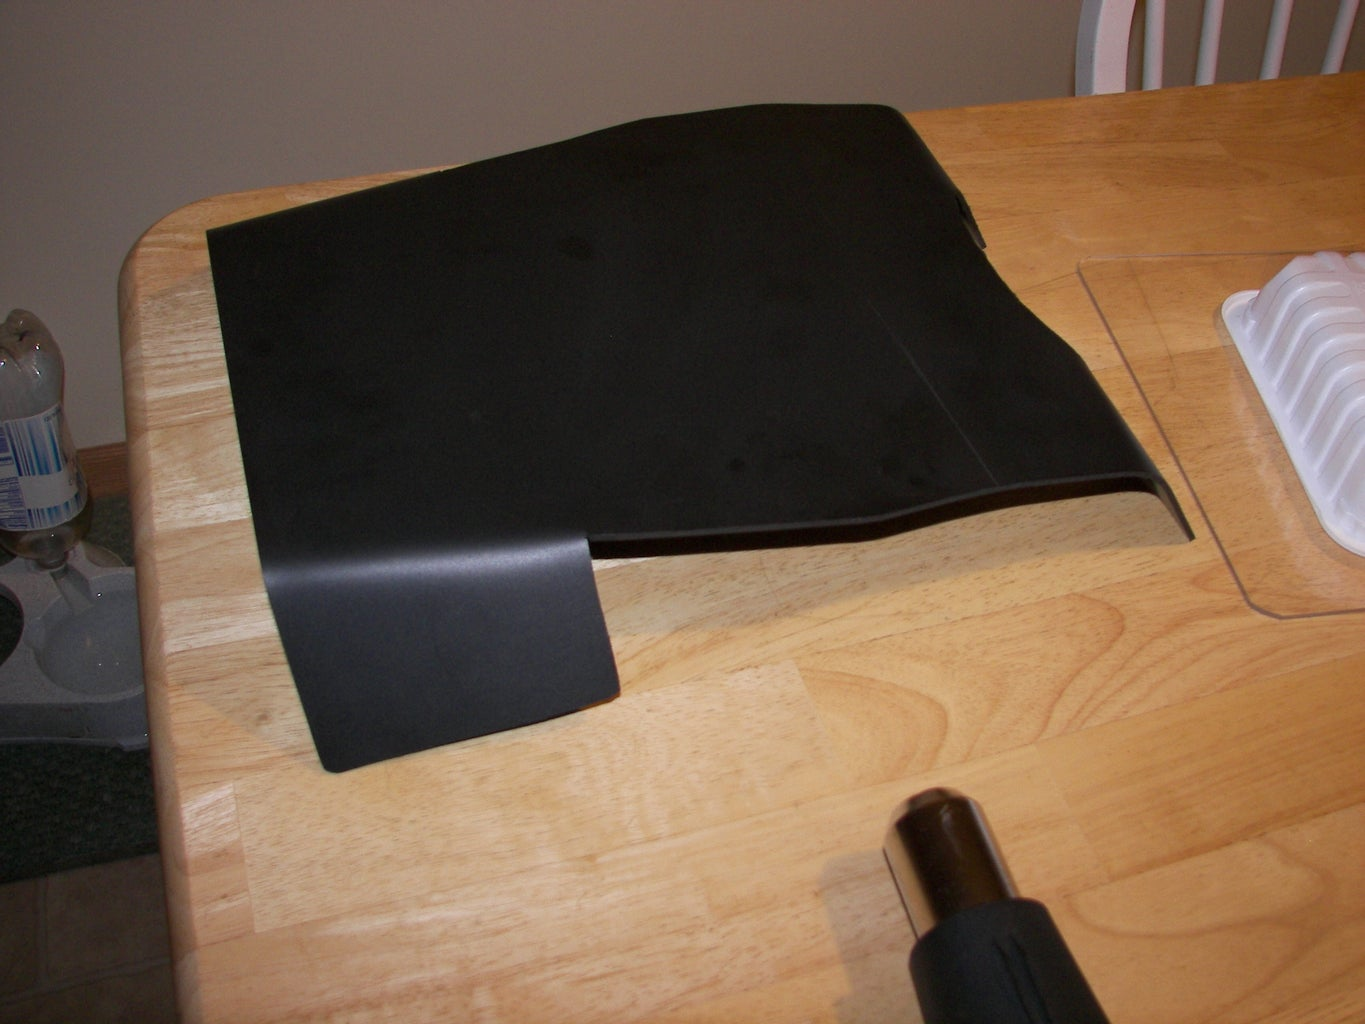 Chest Plate - Bend the PVC Foam Board to the Desired Shape